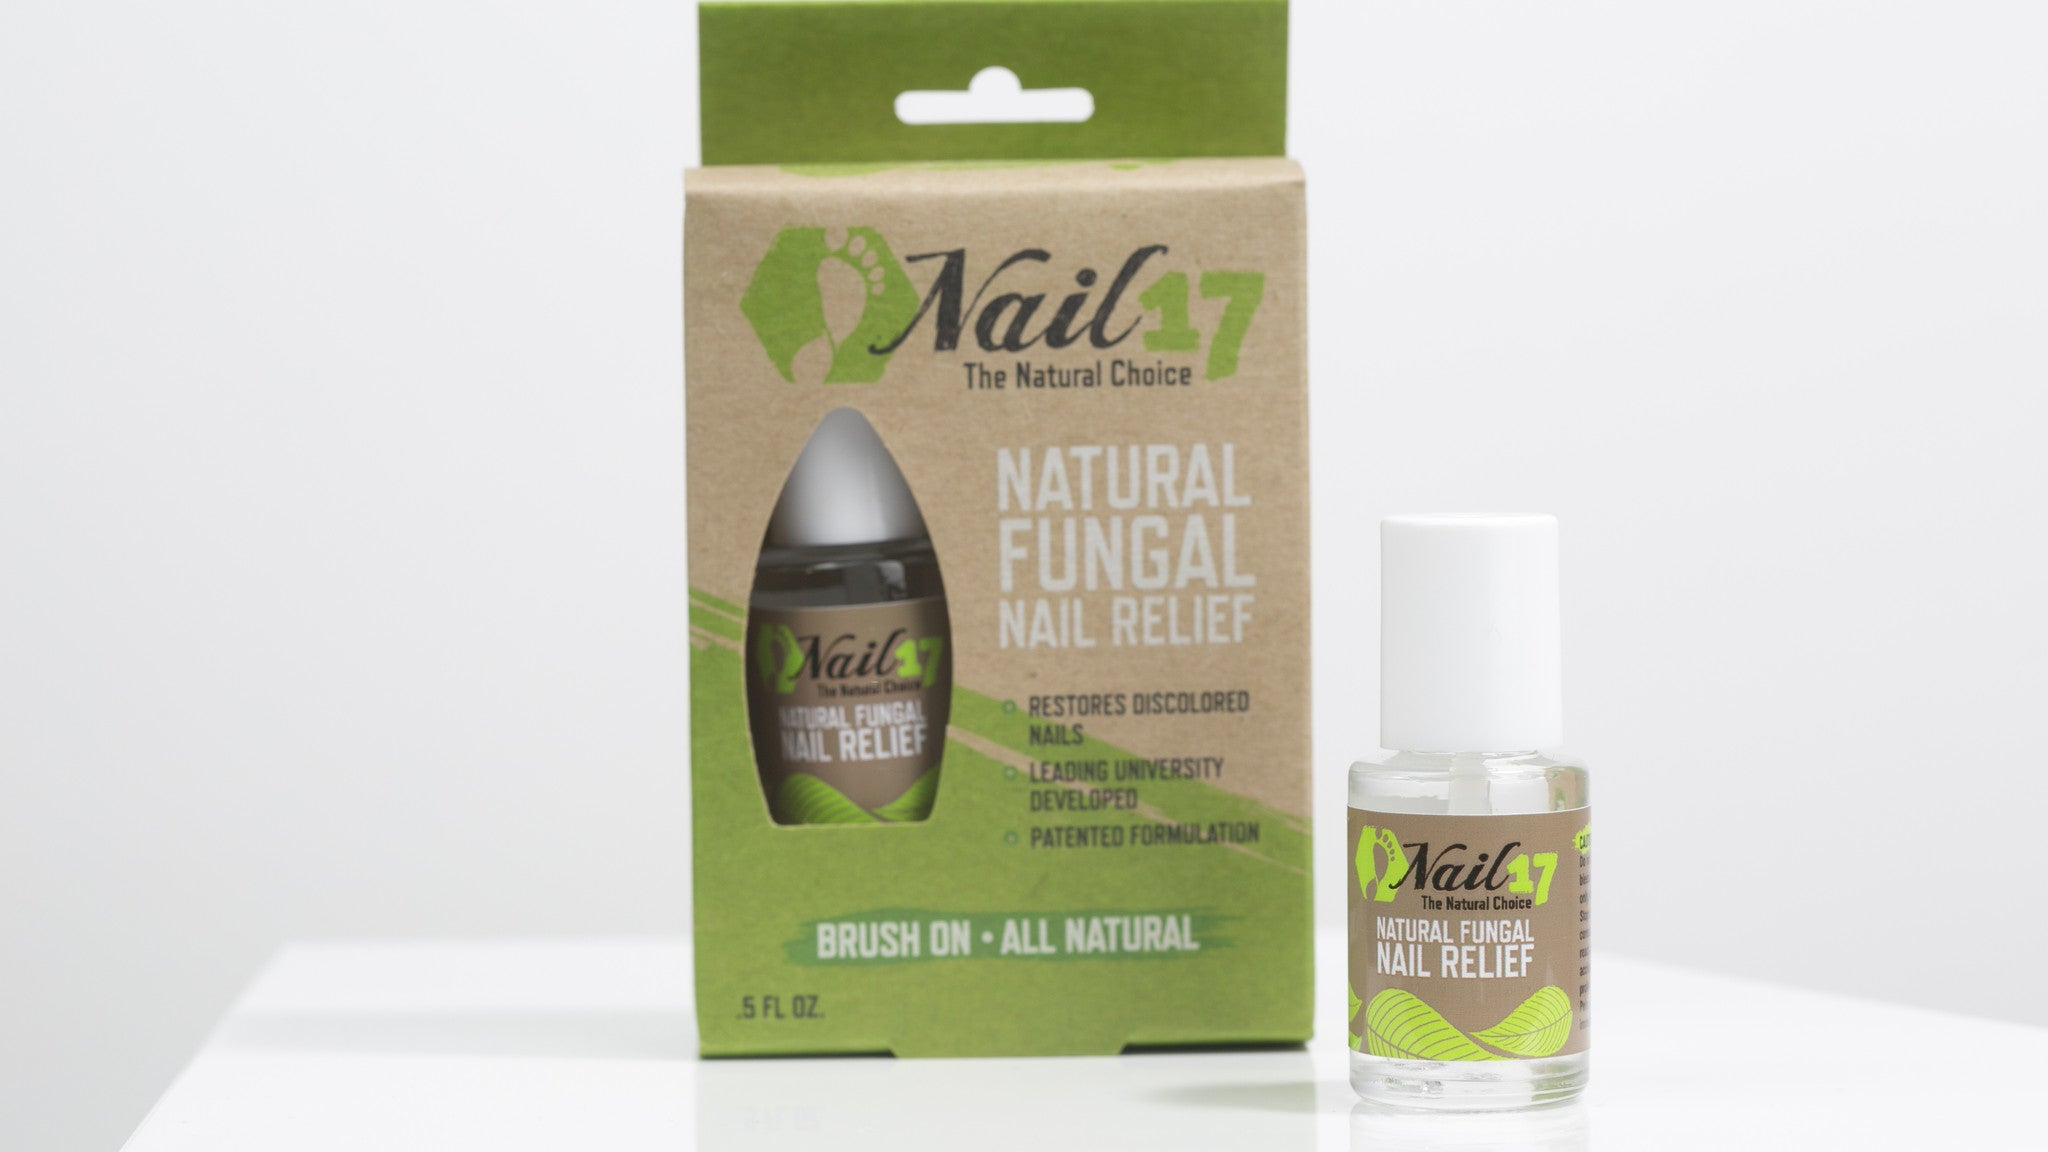 Nail17 Natural Fungal Nail Relief